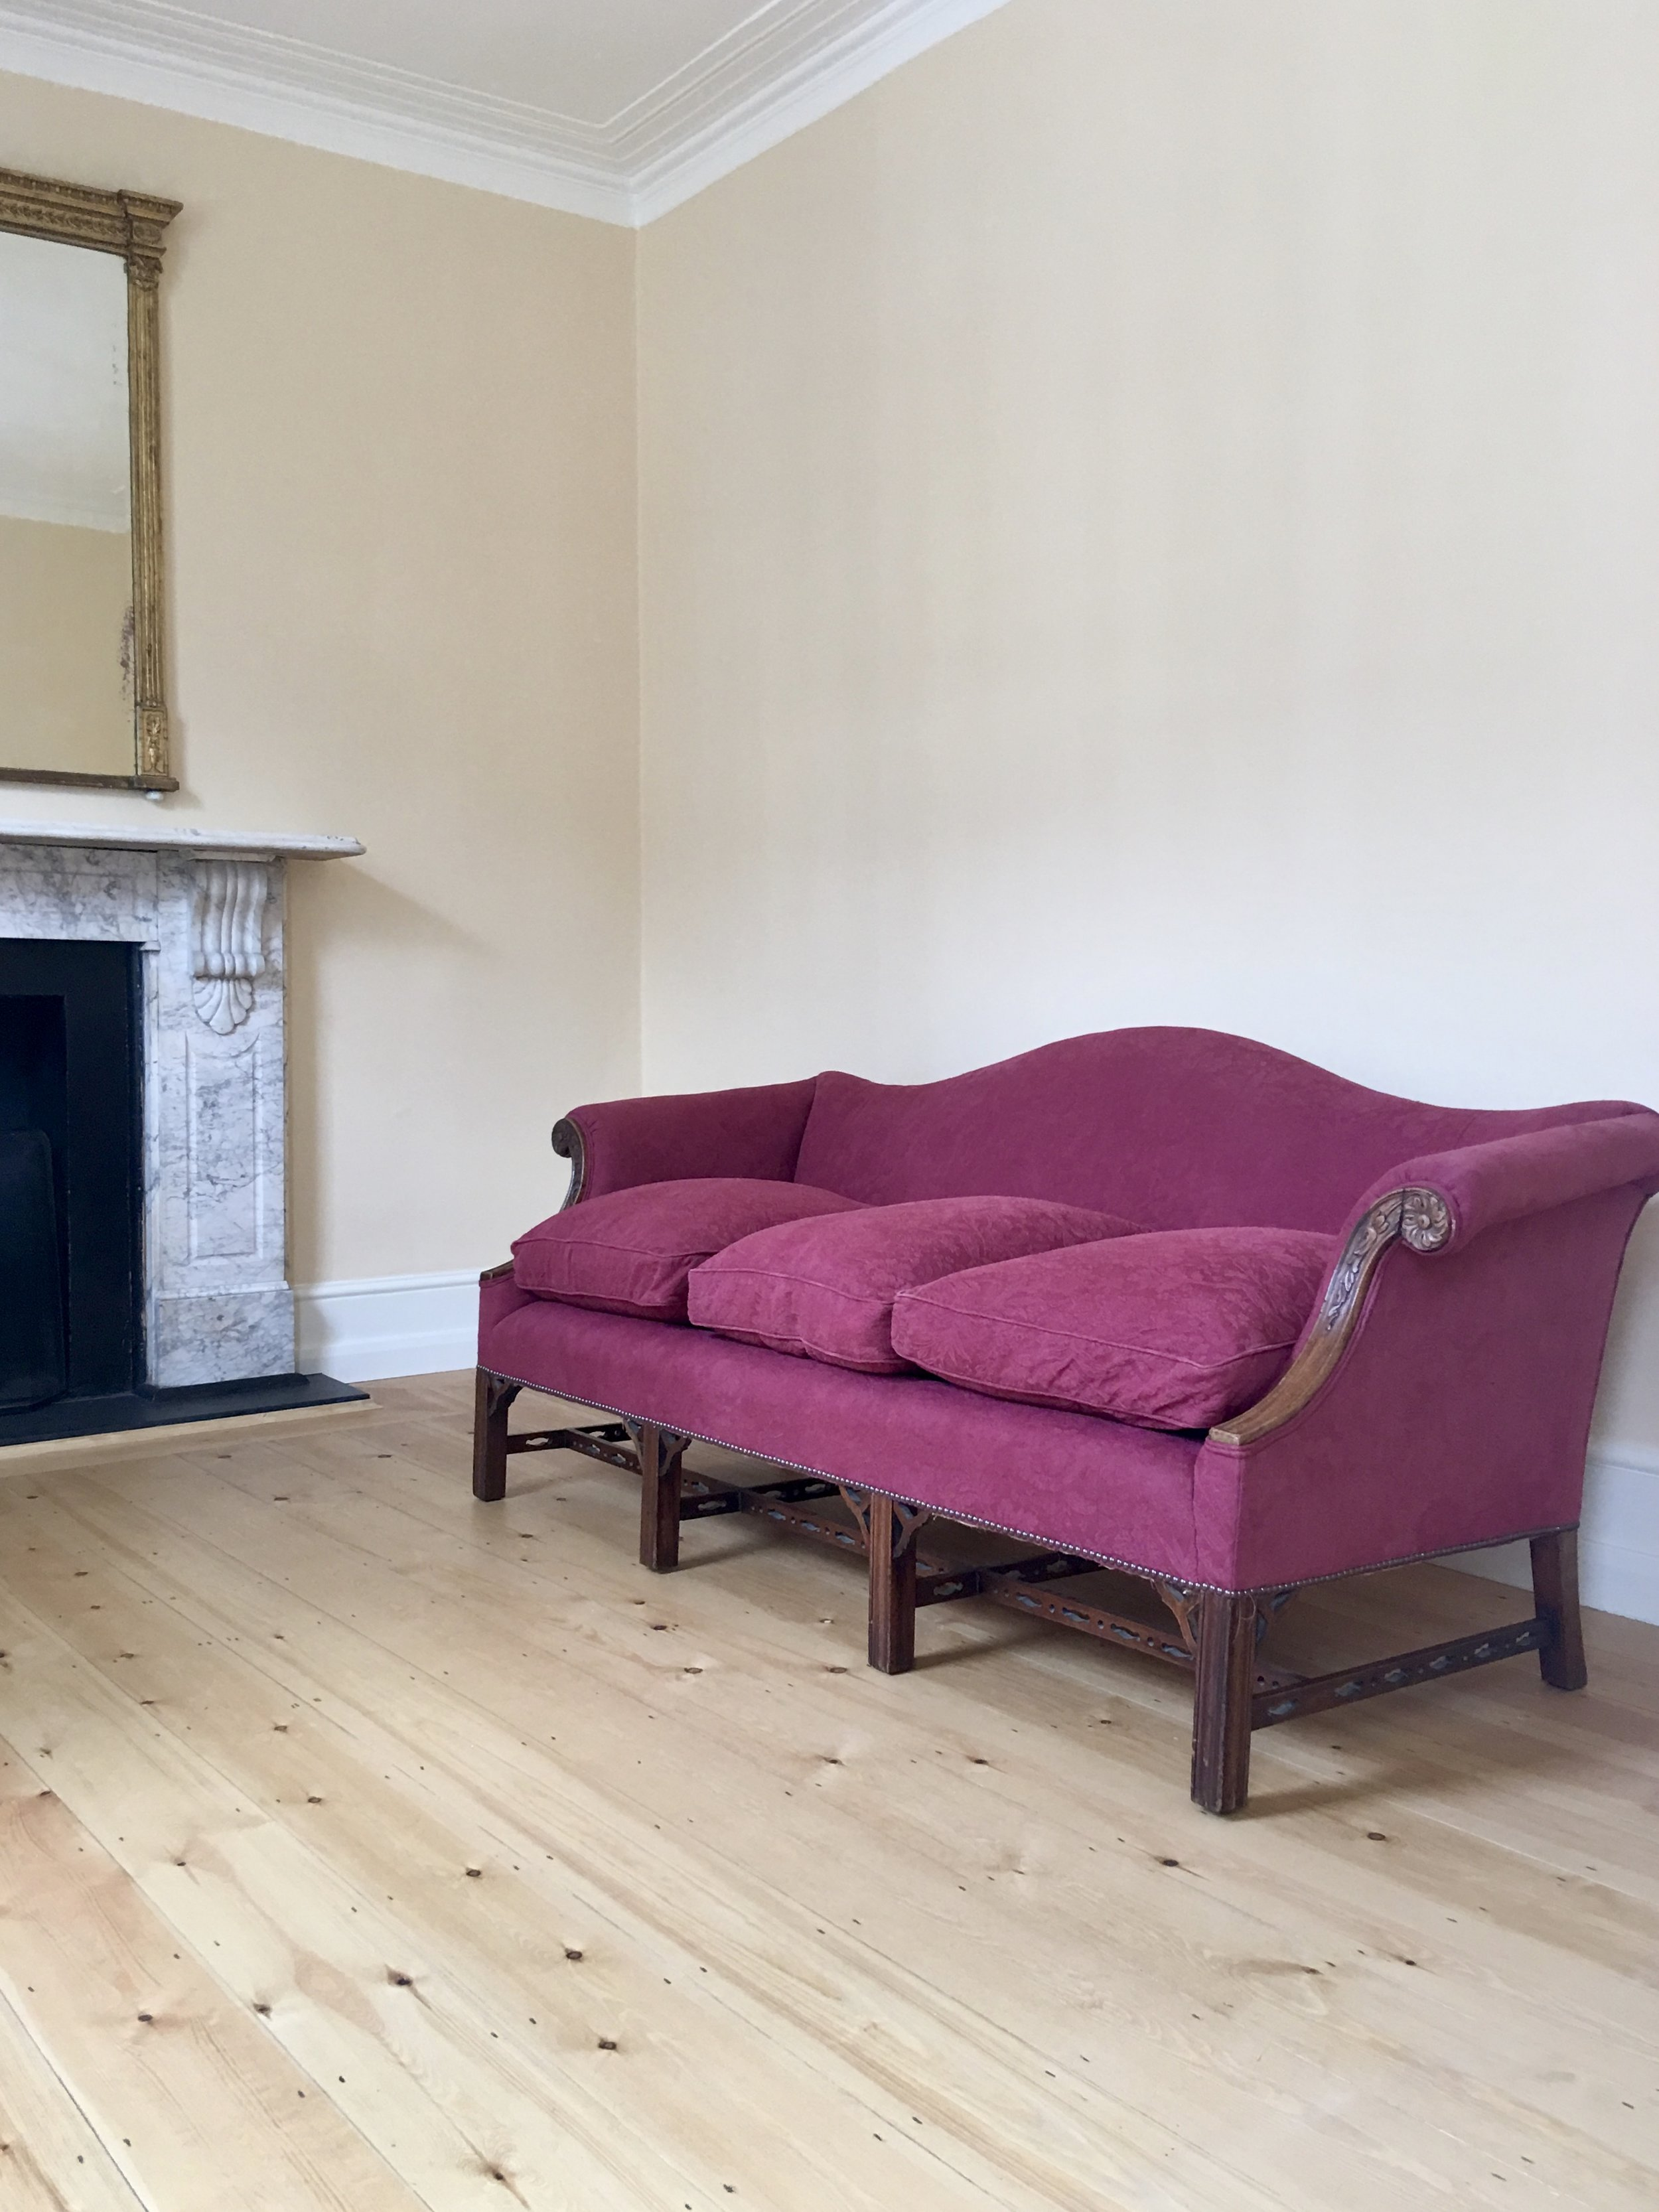 - Safely delivered to the first floor, and perfect proportions for the room. Claudio, London